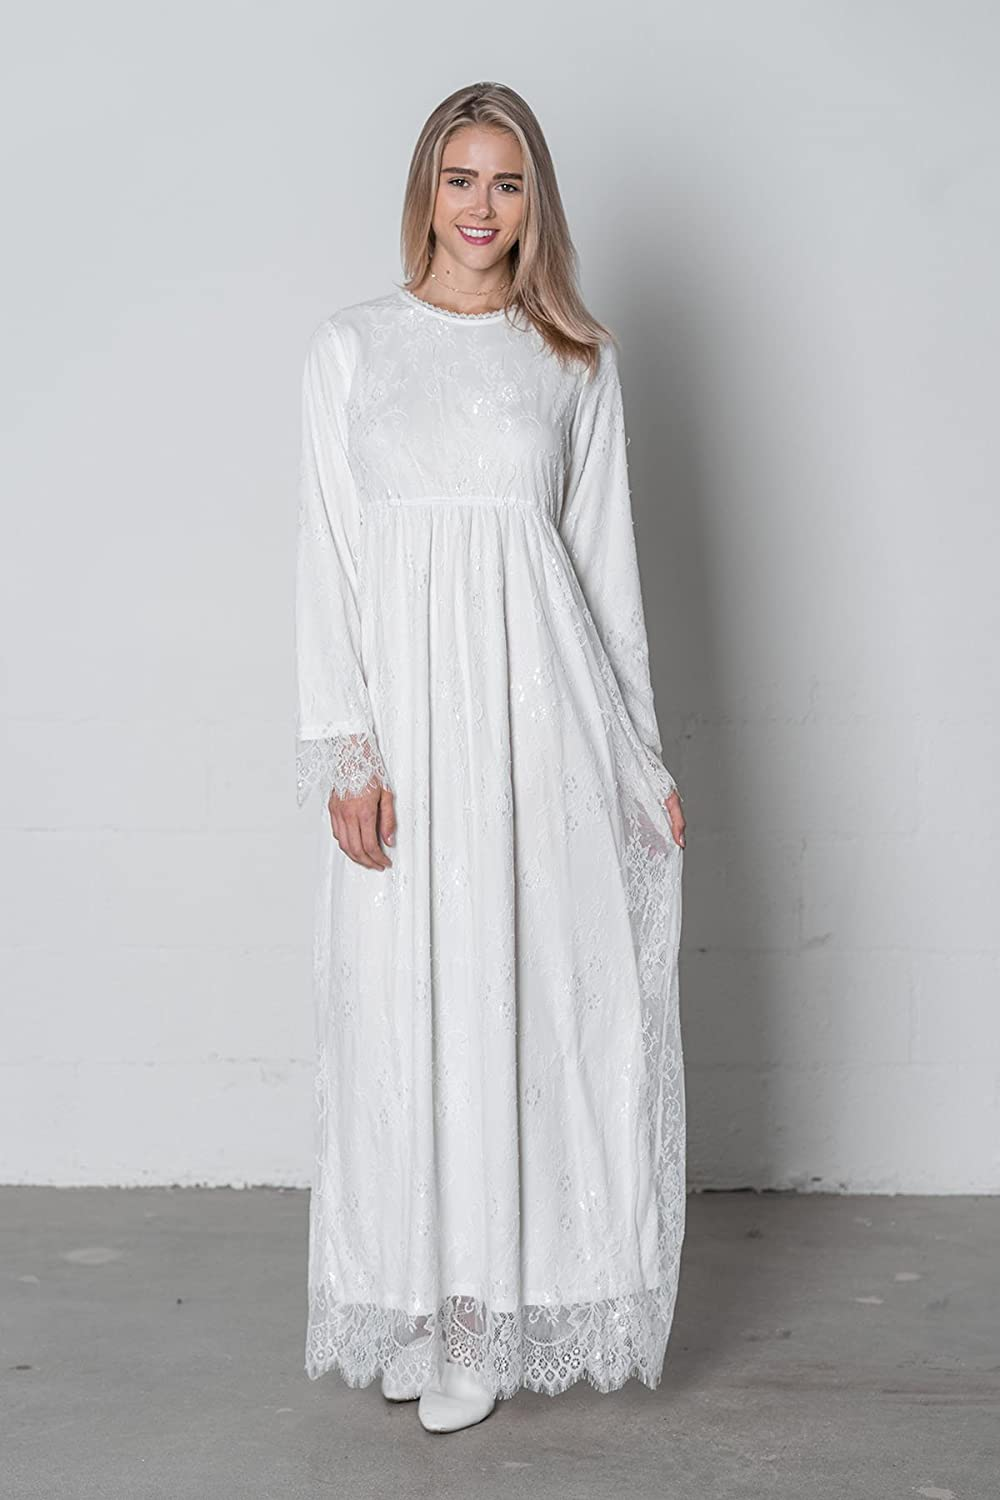 Titanic Fashion – 1st Class Women's Clothing ModWhite White Jasmine Dress $74.00 AT vintagedancer.com